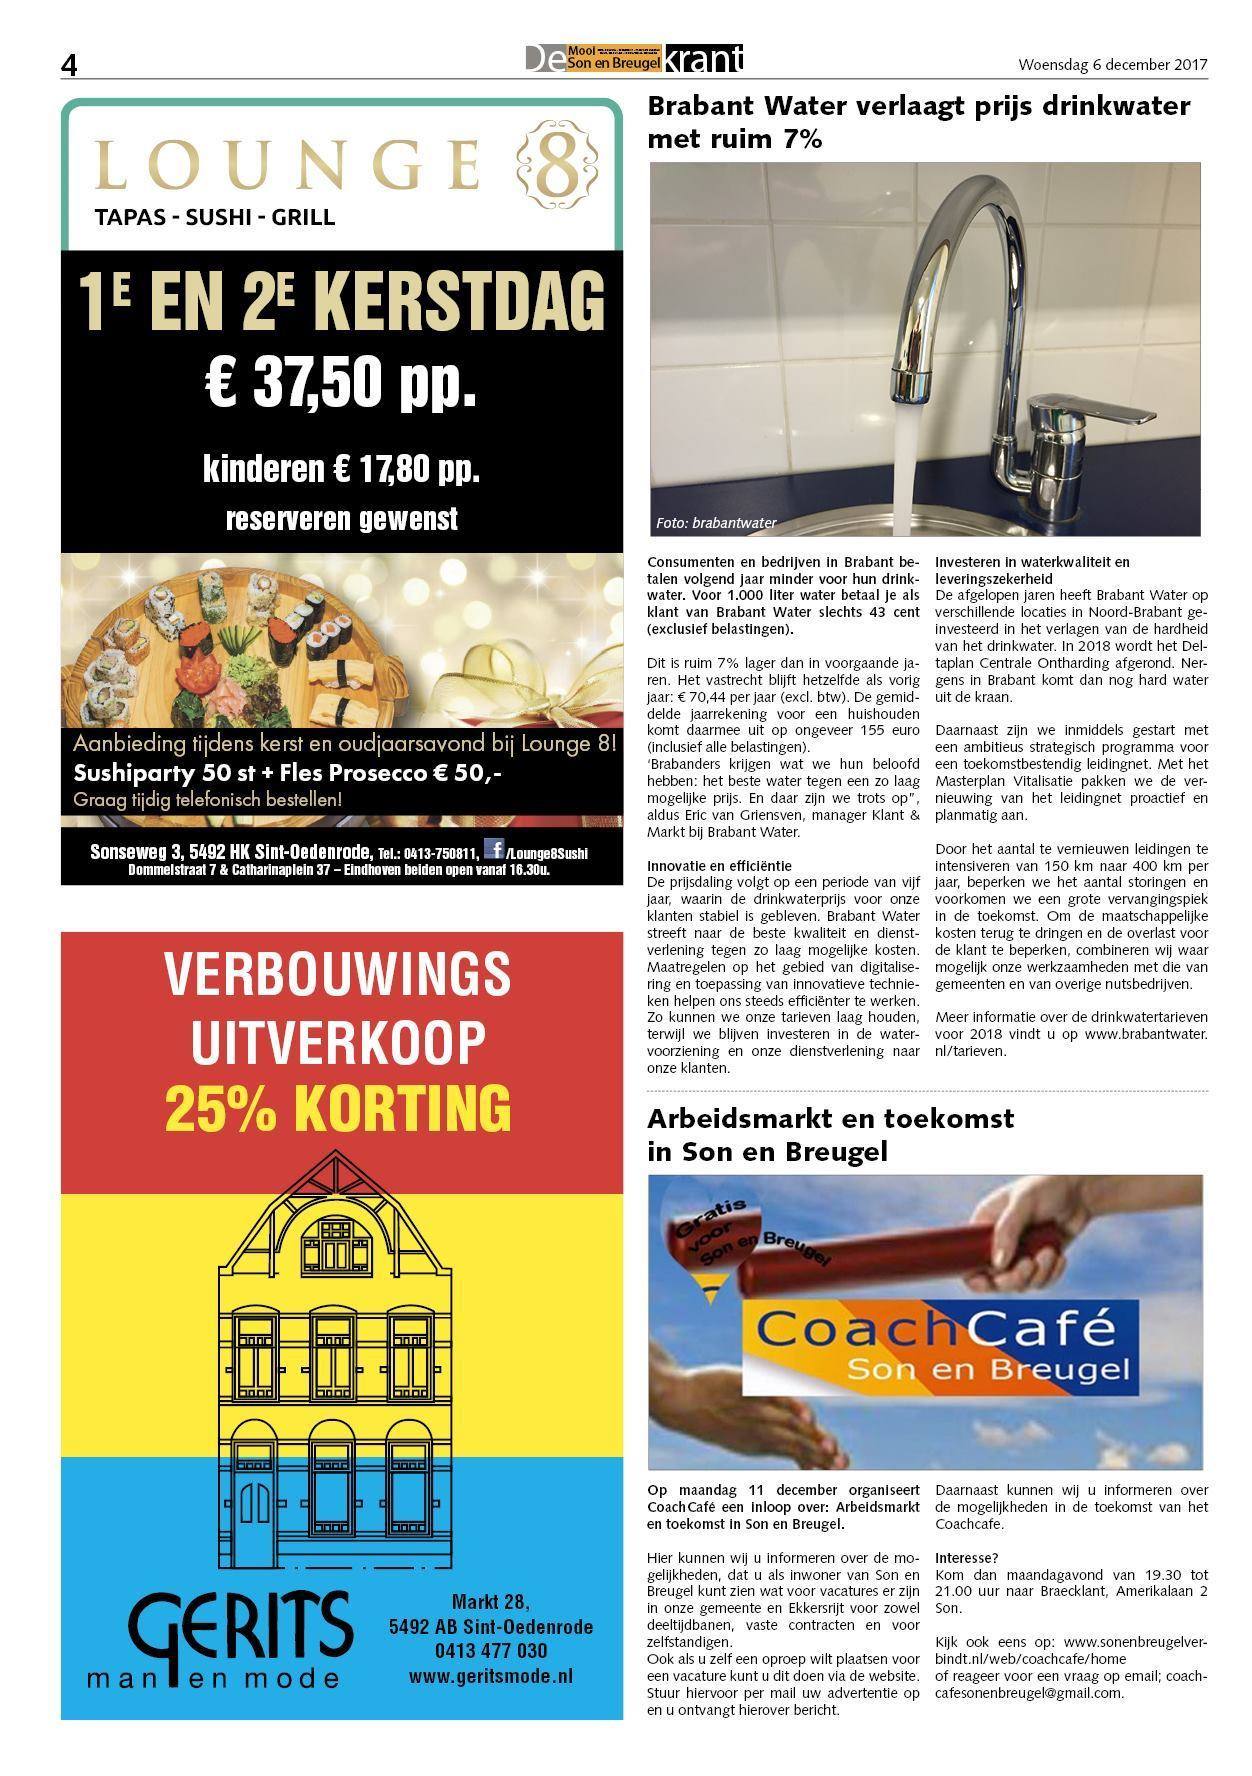 Demooisonenbreugelkrant 6 December 2017